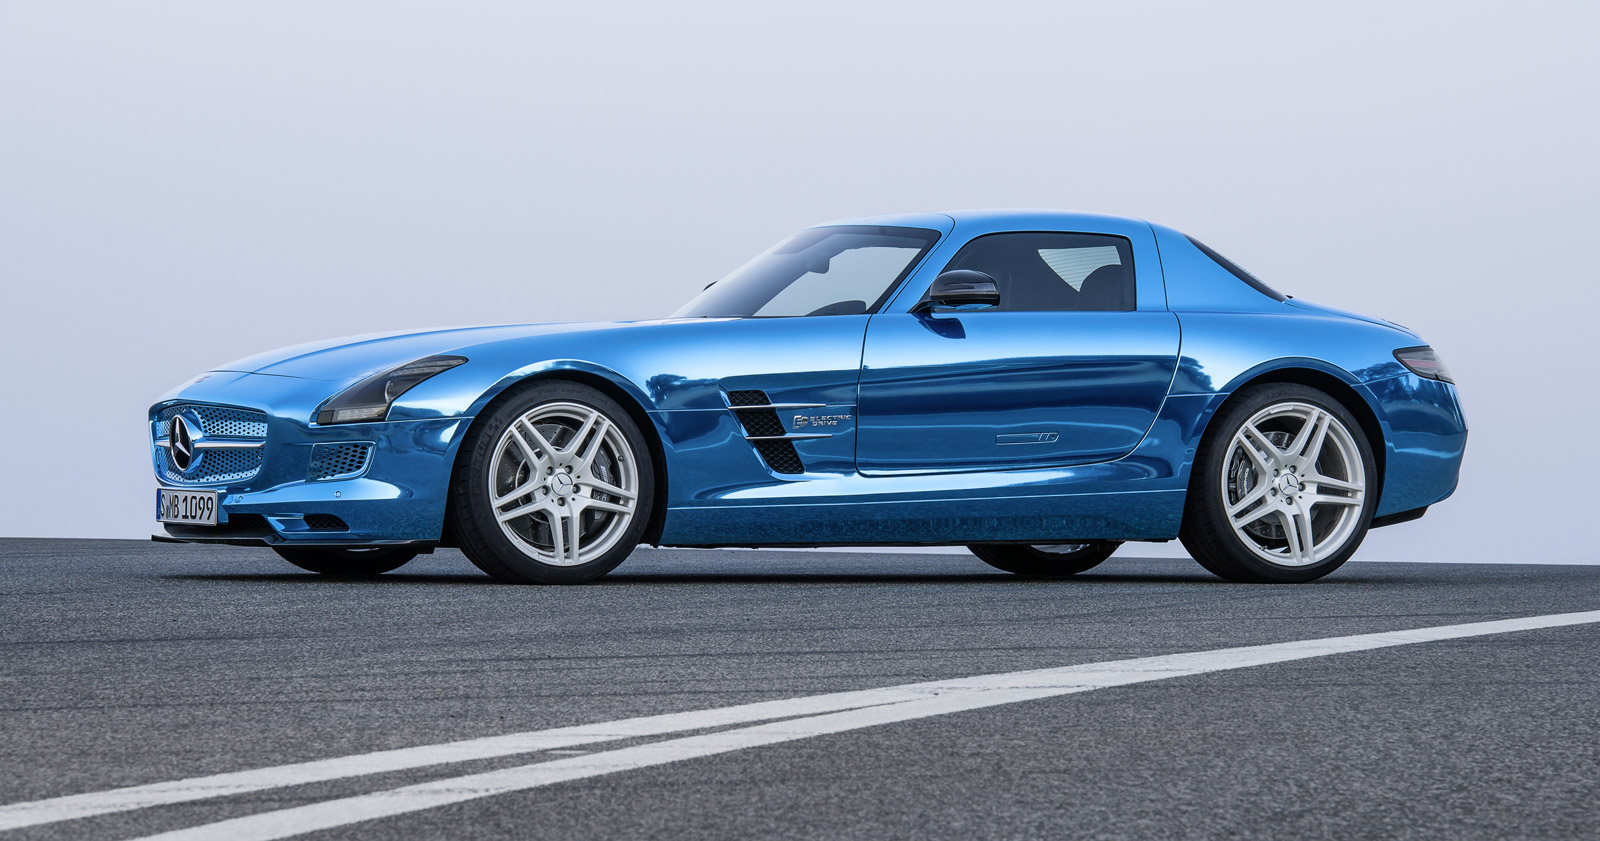 2013 MercedesBenz SLS AMG Electric Drive Sexy But Expensive